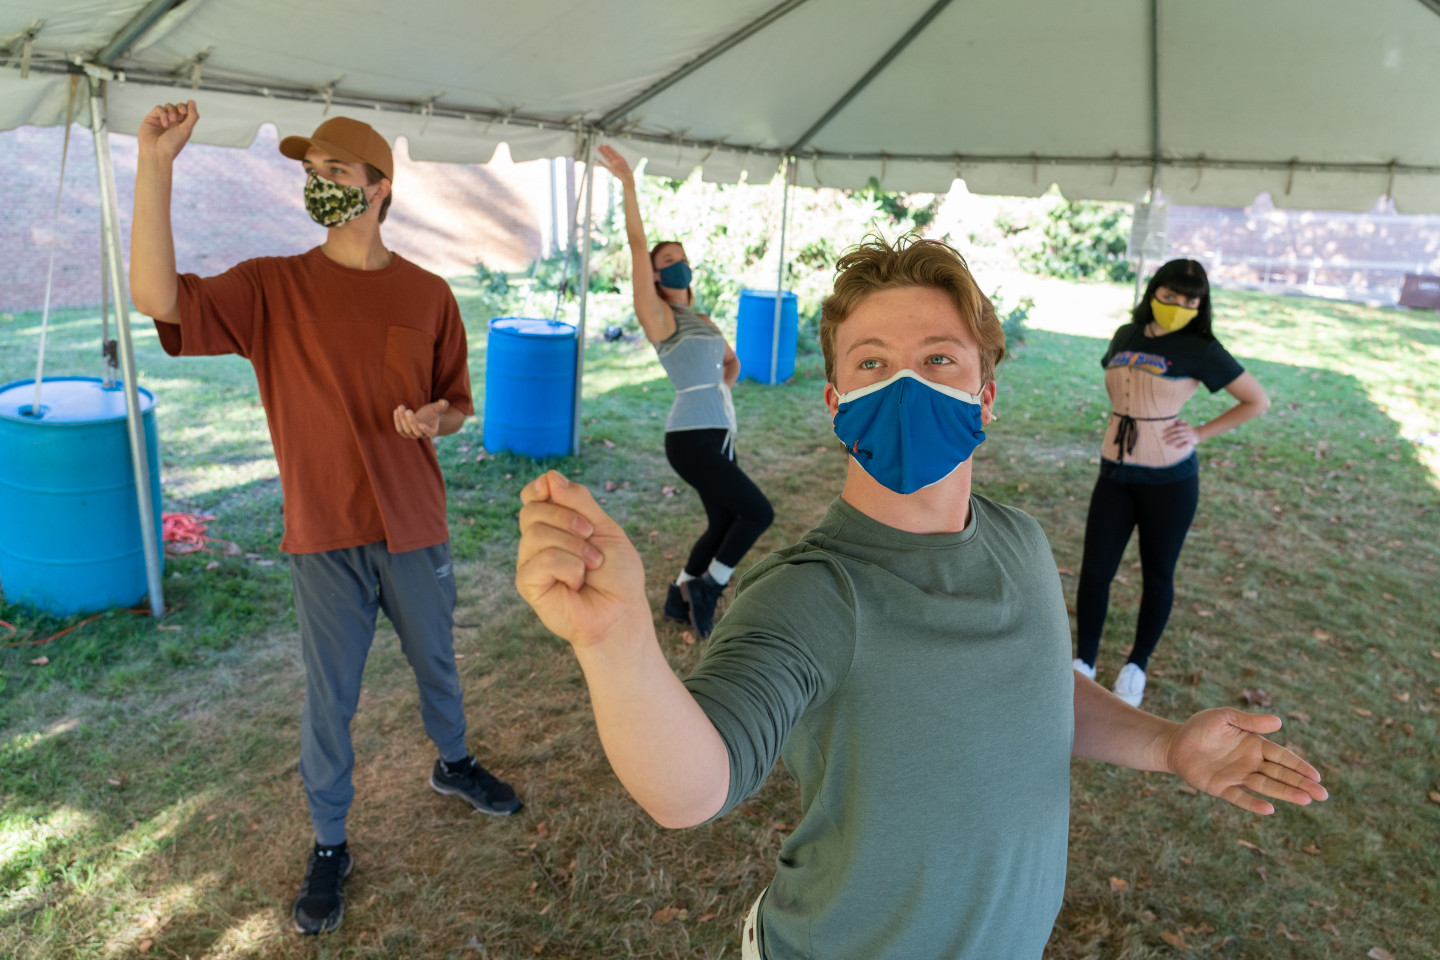 Student actors rehearse for an upcoming production outside under a tent.